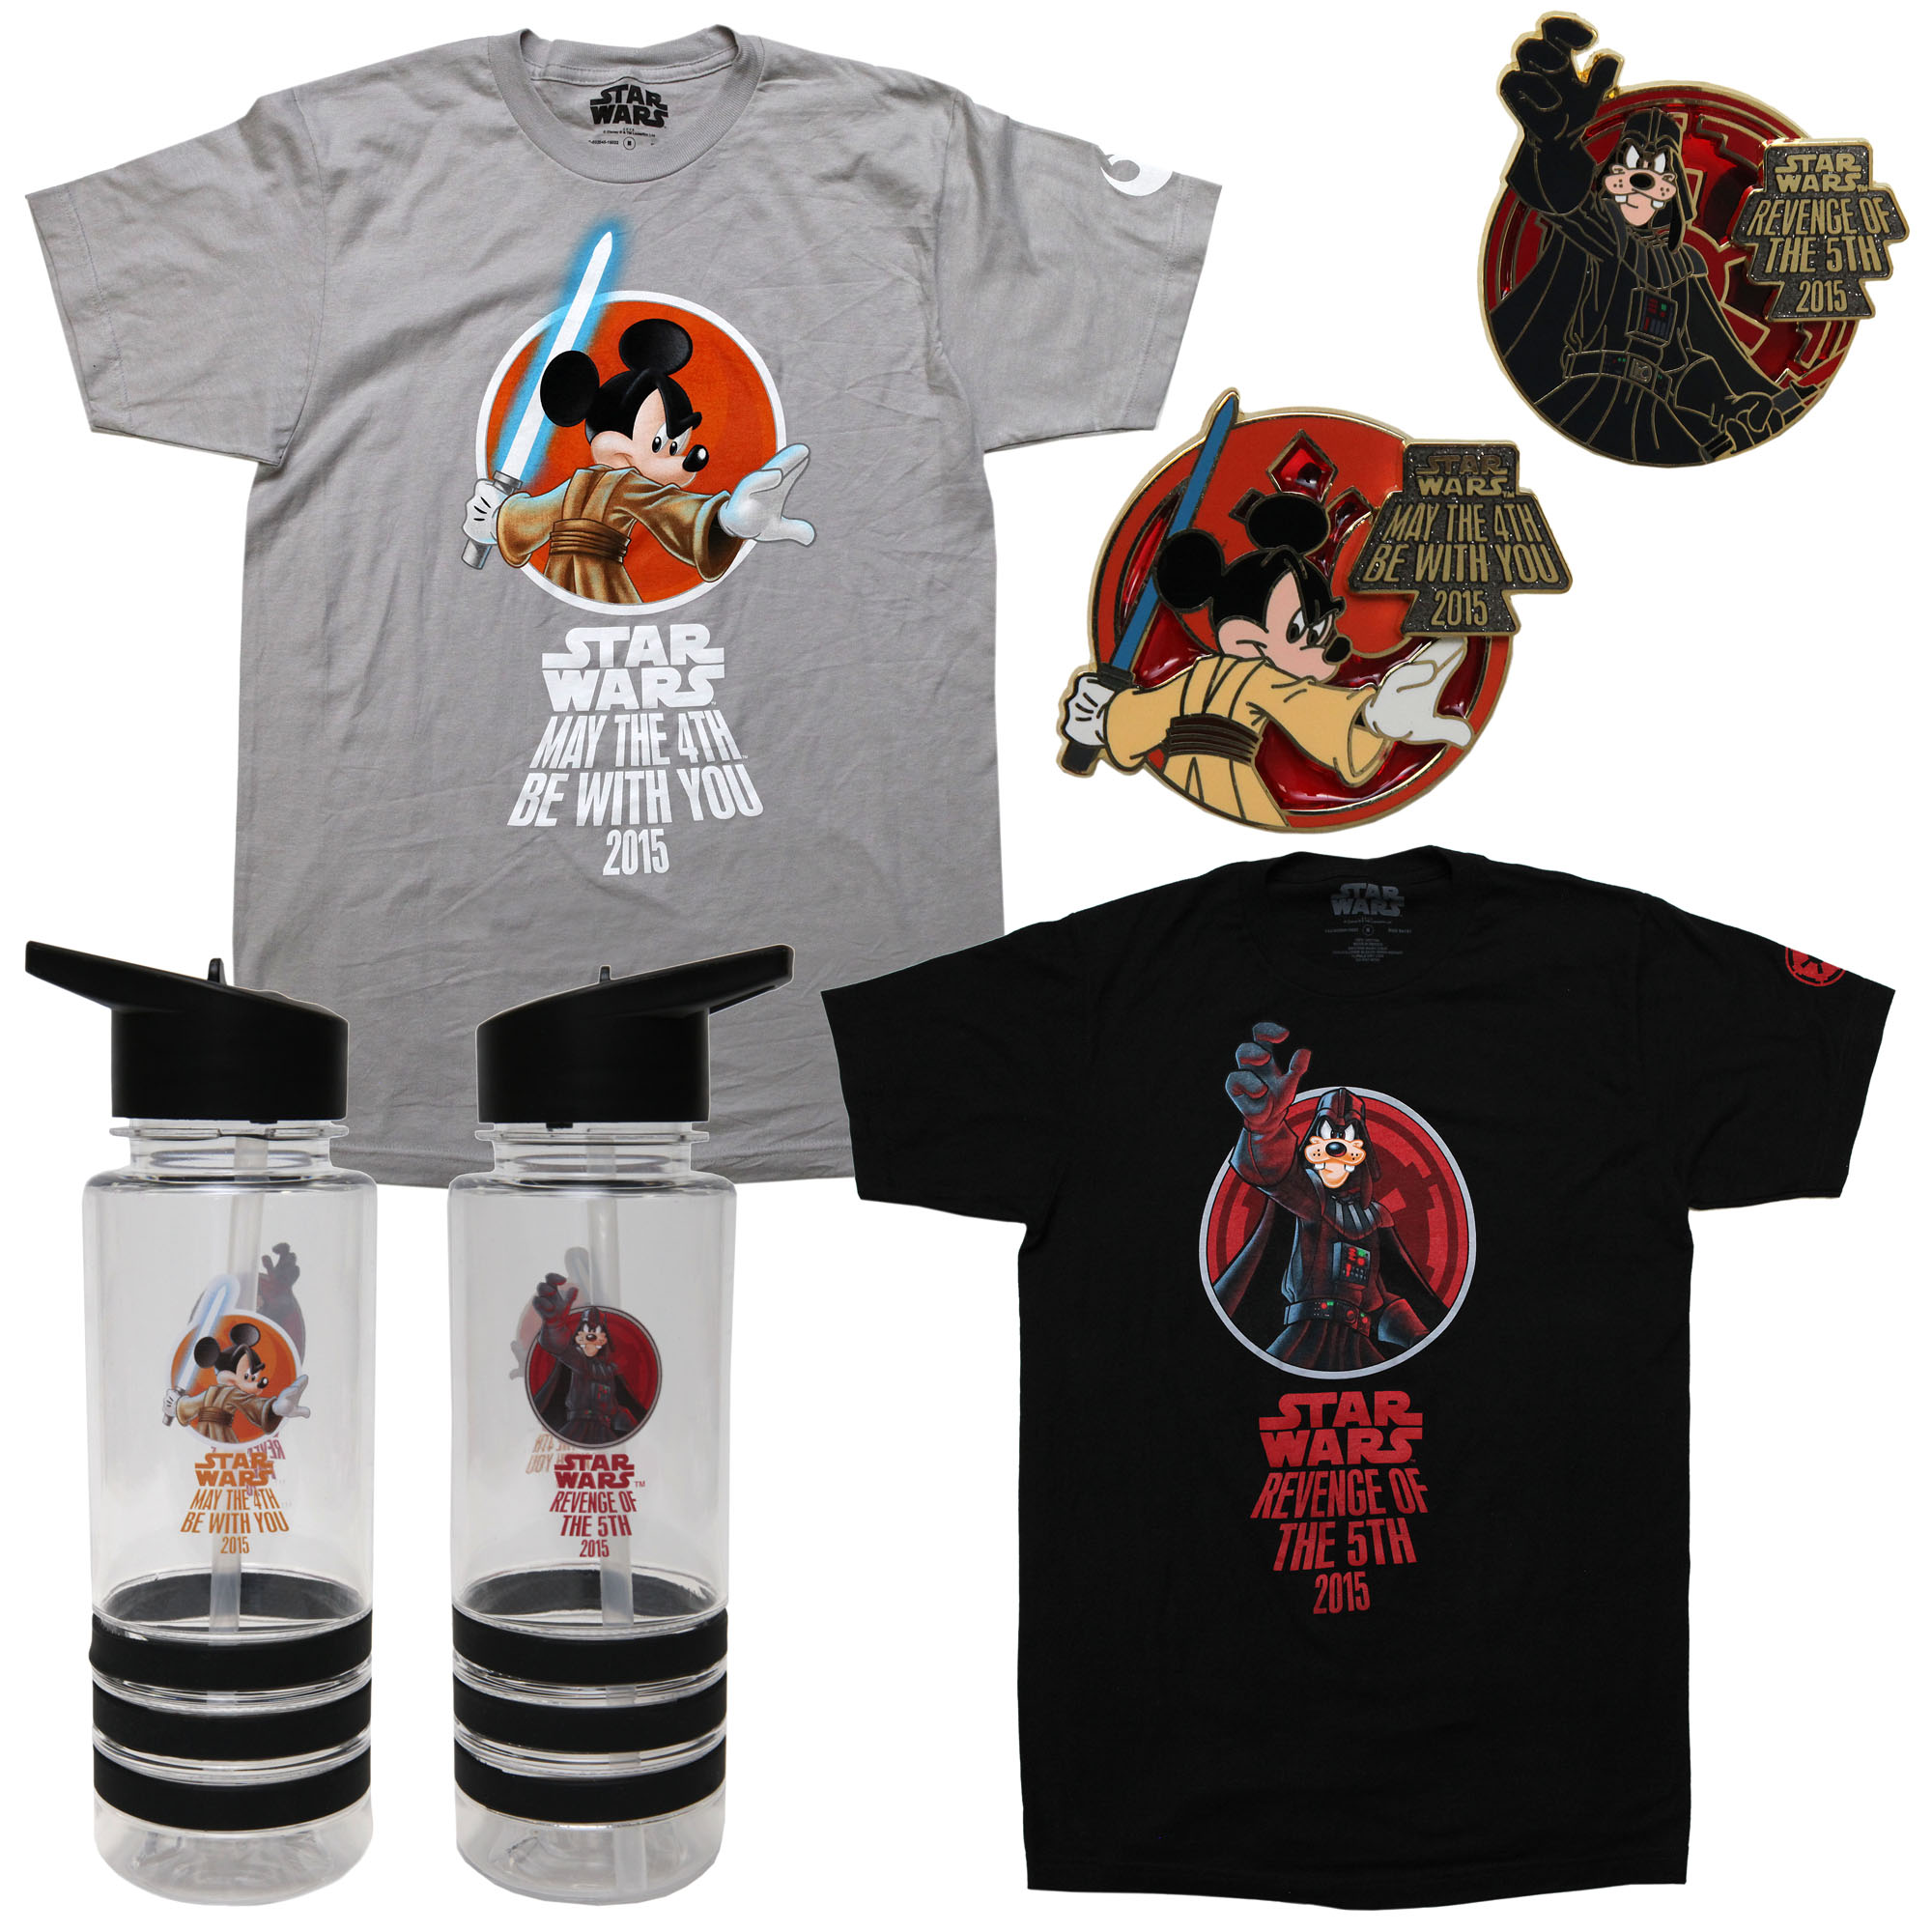 May The 4th Be With You Exclusives: New Star Wars Day Merchandise Now Available At Disney